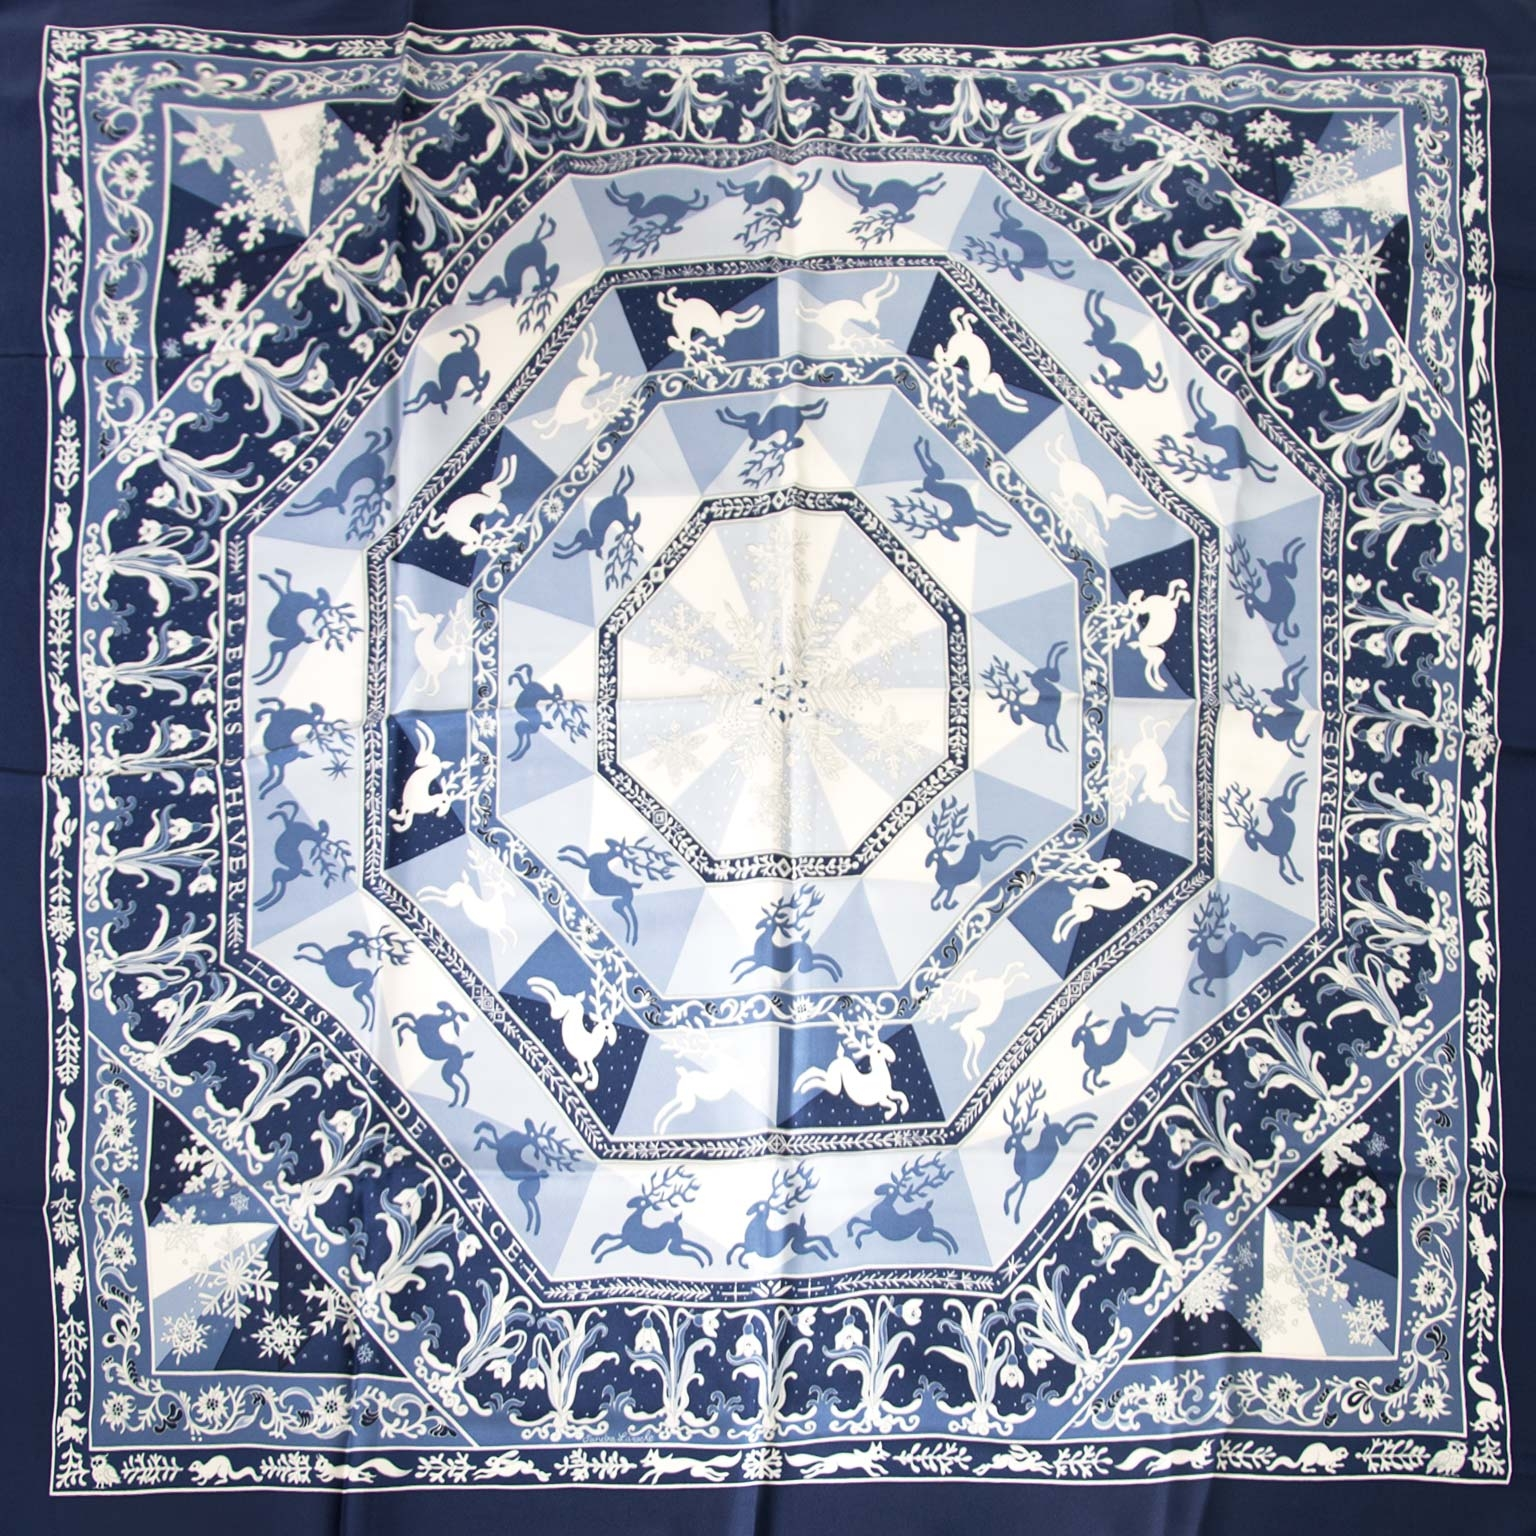 Hermès Blue & White 'Flocon De Neige' Silk Carré Scarf Buy authentic designer Hermes secondhand silk scarves at Labellov at the best price. Safe and secure shopping. Koop tweedehands authentieke Hermes sjaals tassen bij designer webwinkel labellov.